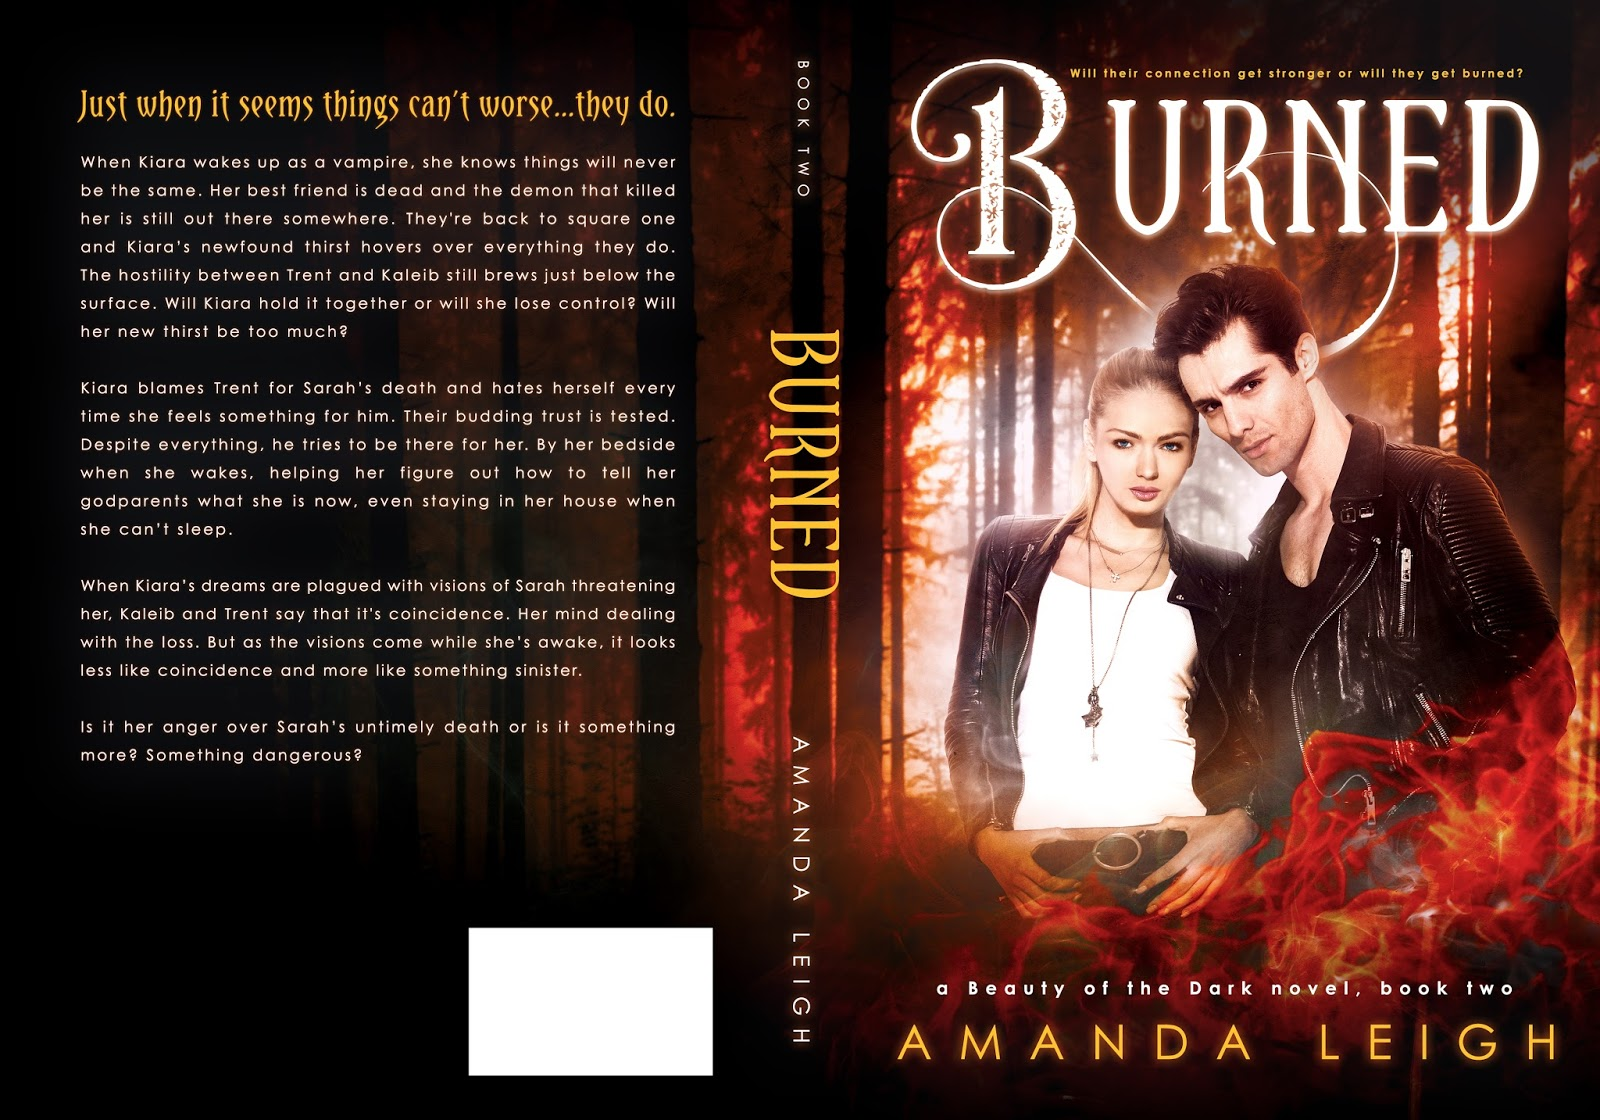 Hea pr cover reveal burned by amanda leigh paranormal romance amanda leigh has had a love of words since before she could write them herself once she learned to read and write herself she just couldnt stop fandeluxe Choice Image